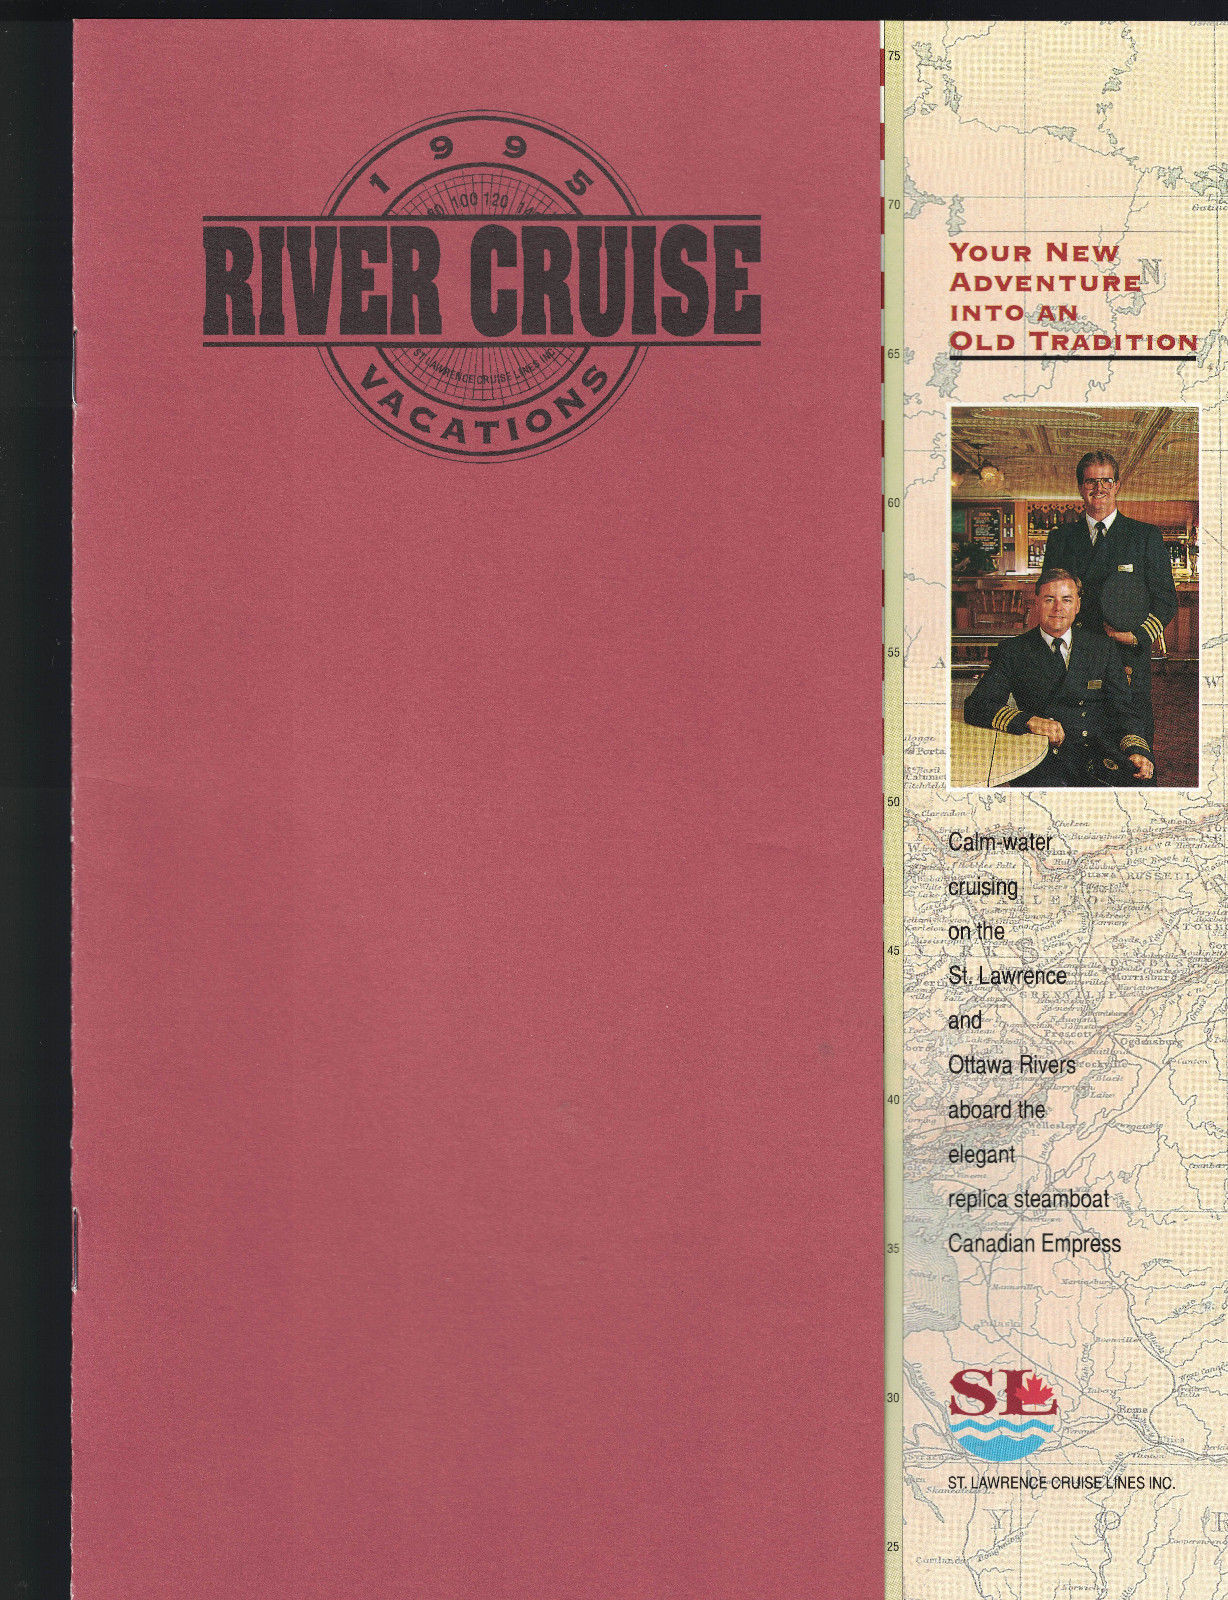 St Lawrence River 1995 River Cruise Vacations Booklet Canadian Empress